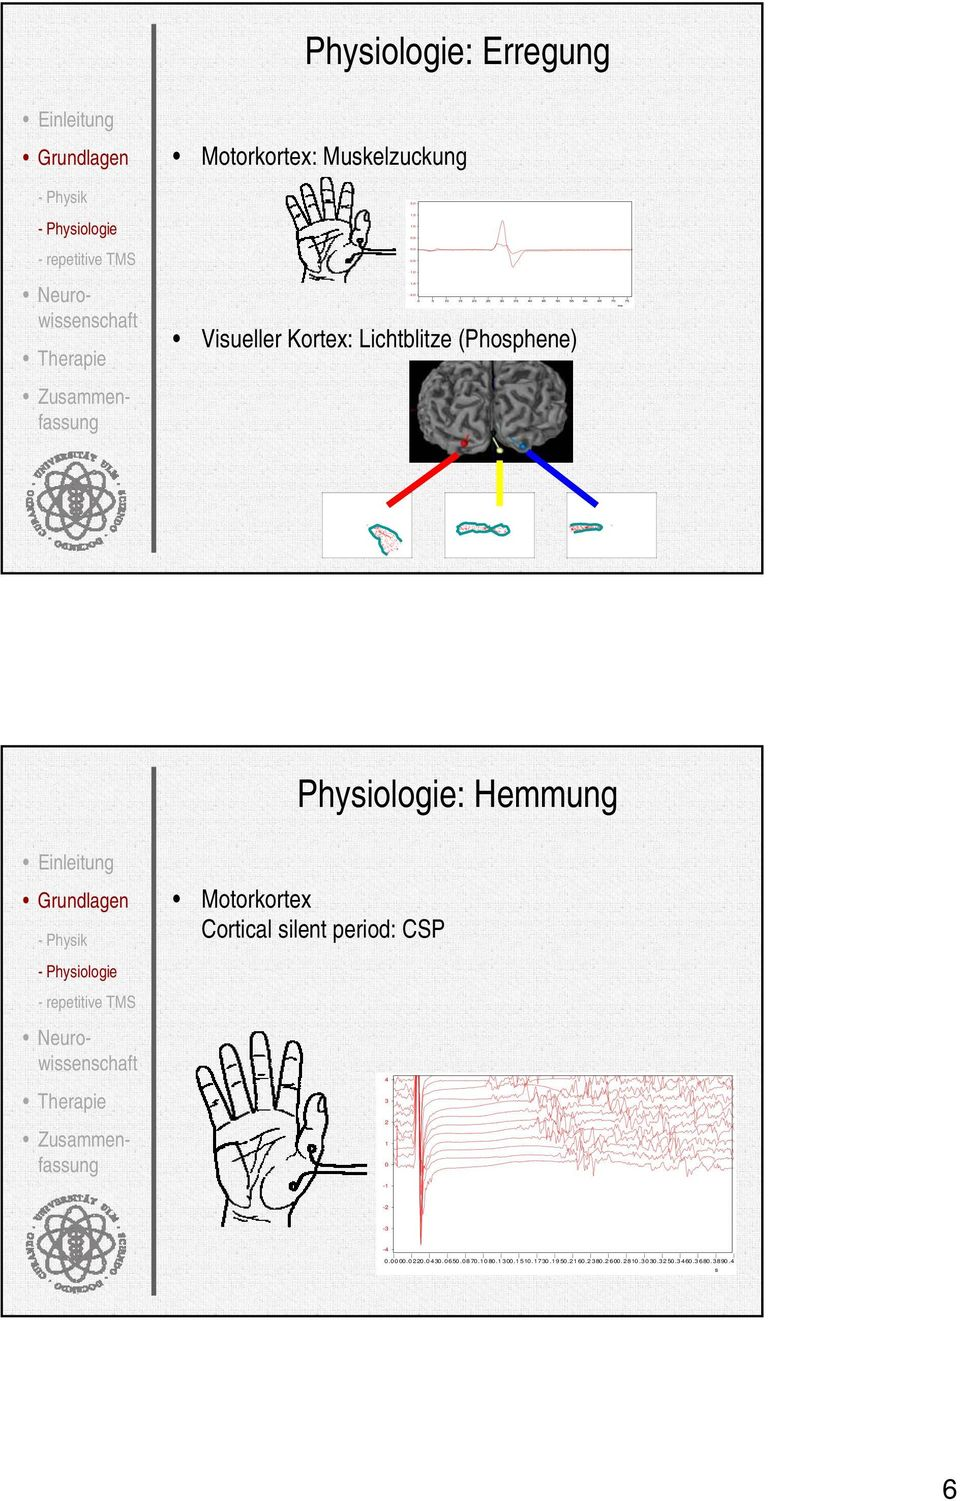 Physiologie: Hemmung - Physik Motorkortex Cortical silent period: CSP - Physiologie - repetitive TMS 4 3 2 1